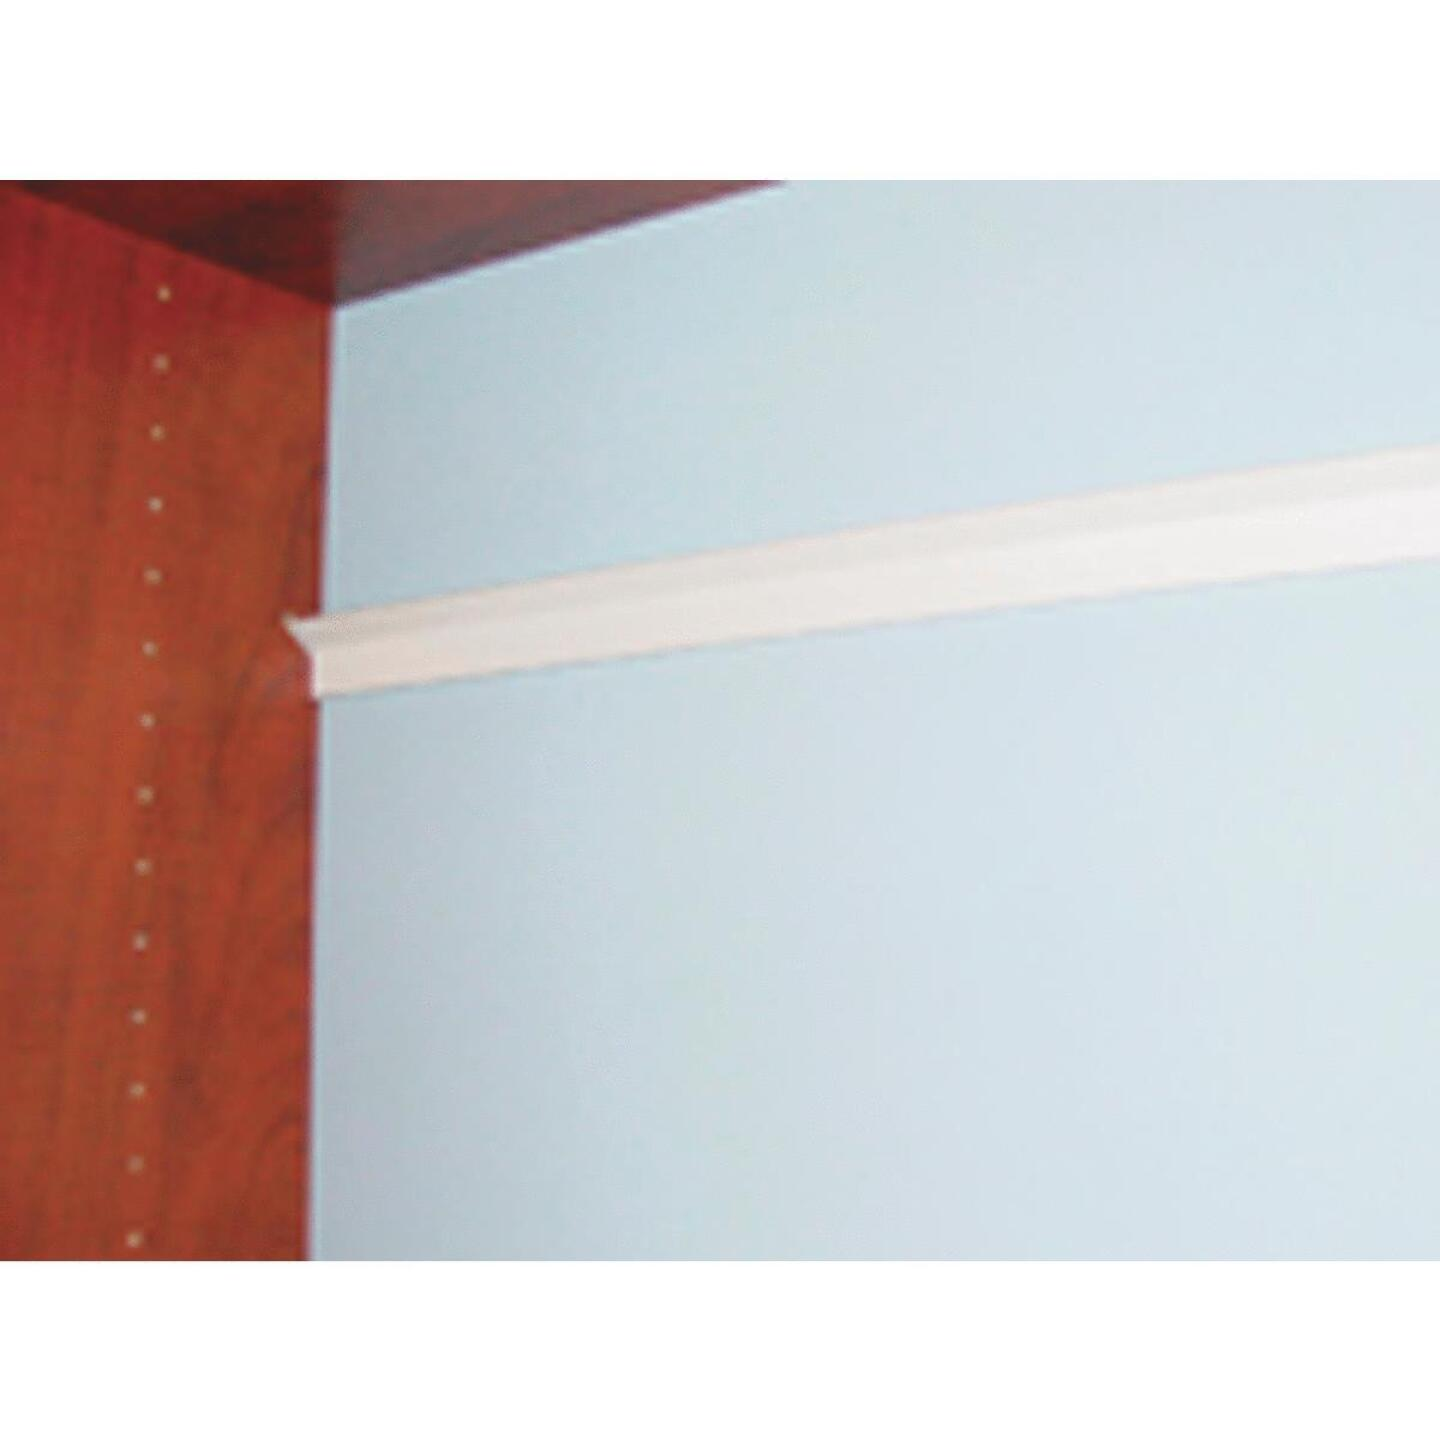 Easy Track 35 In. Horizontal Track Rail Cover (2-Count) Image 1